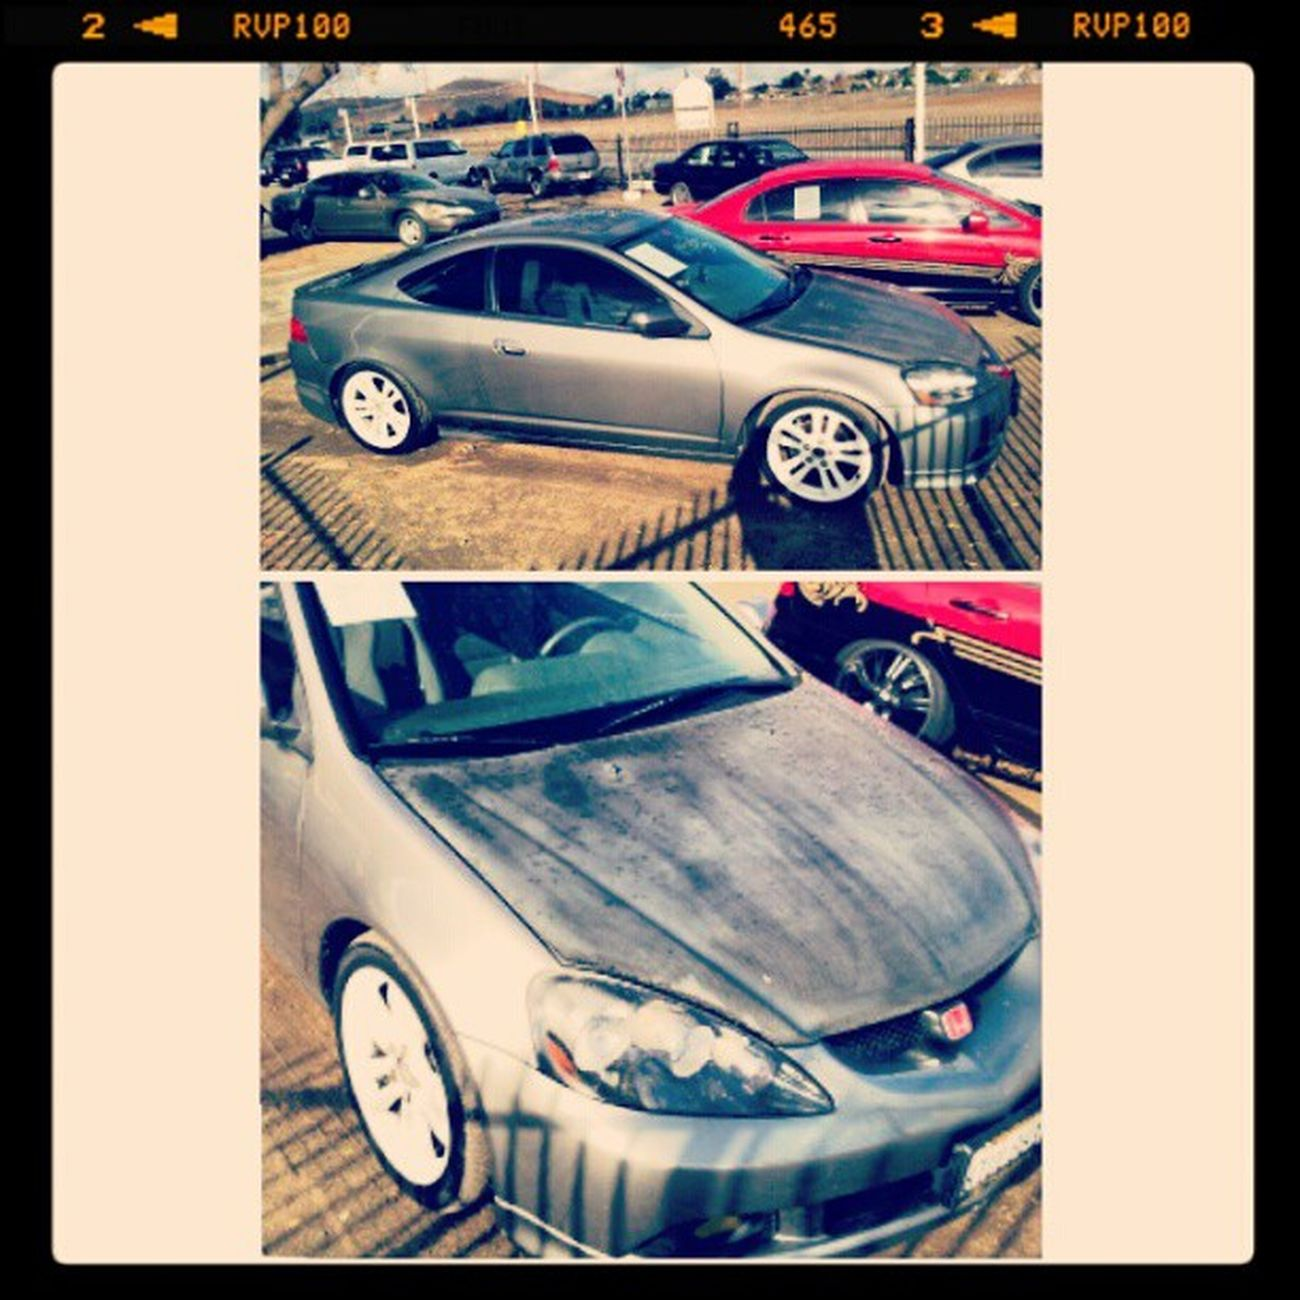 The car i want to get Rsx Integra Jdmyo CarOfTheDay smashed instapic instalike Honda